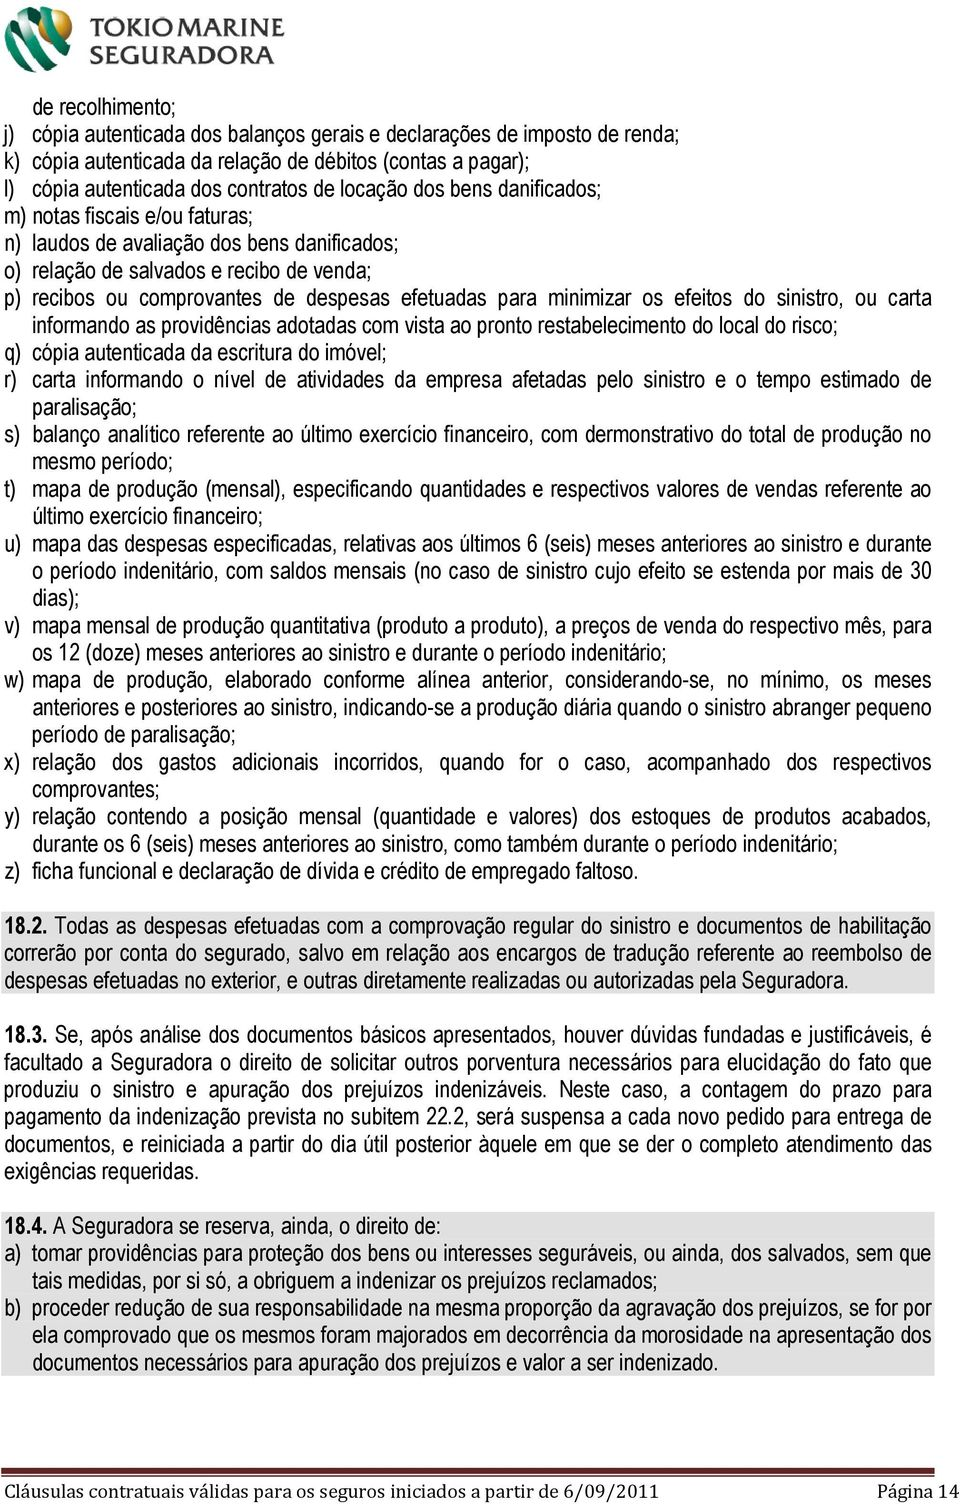 minimizar os efeitos do sinistro, ou carta informando as providências adotadas com vista ao pronto restabelecimento do local do risco; q) cópia autenticada da escritura do imóvel; r) carta informando